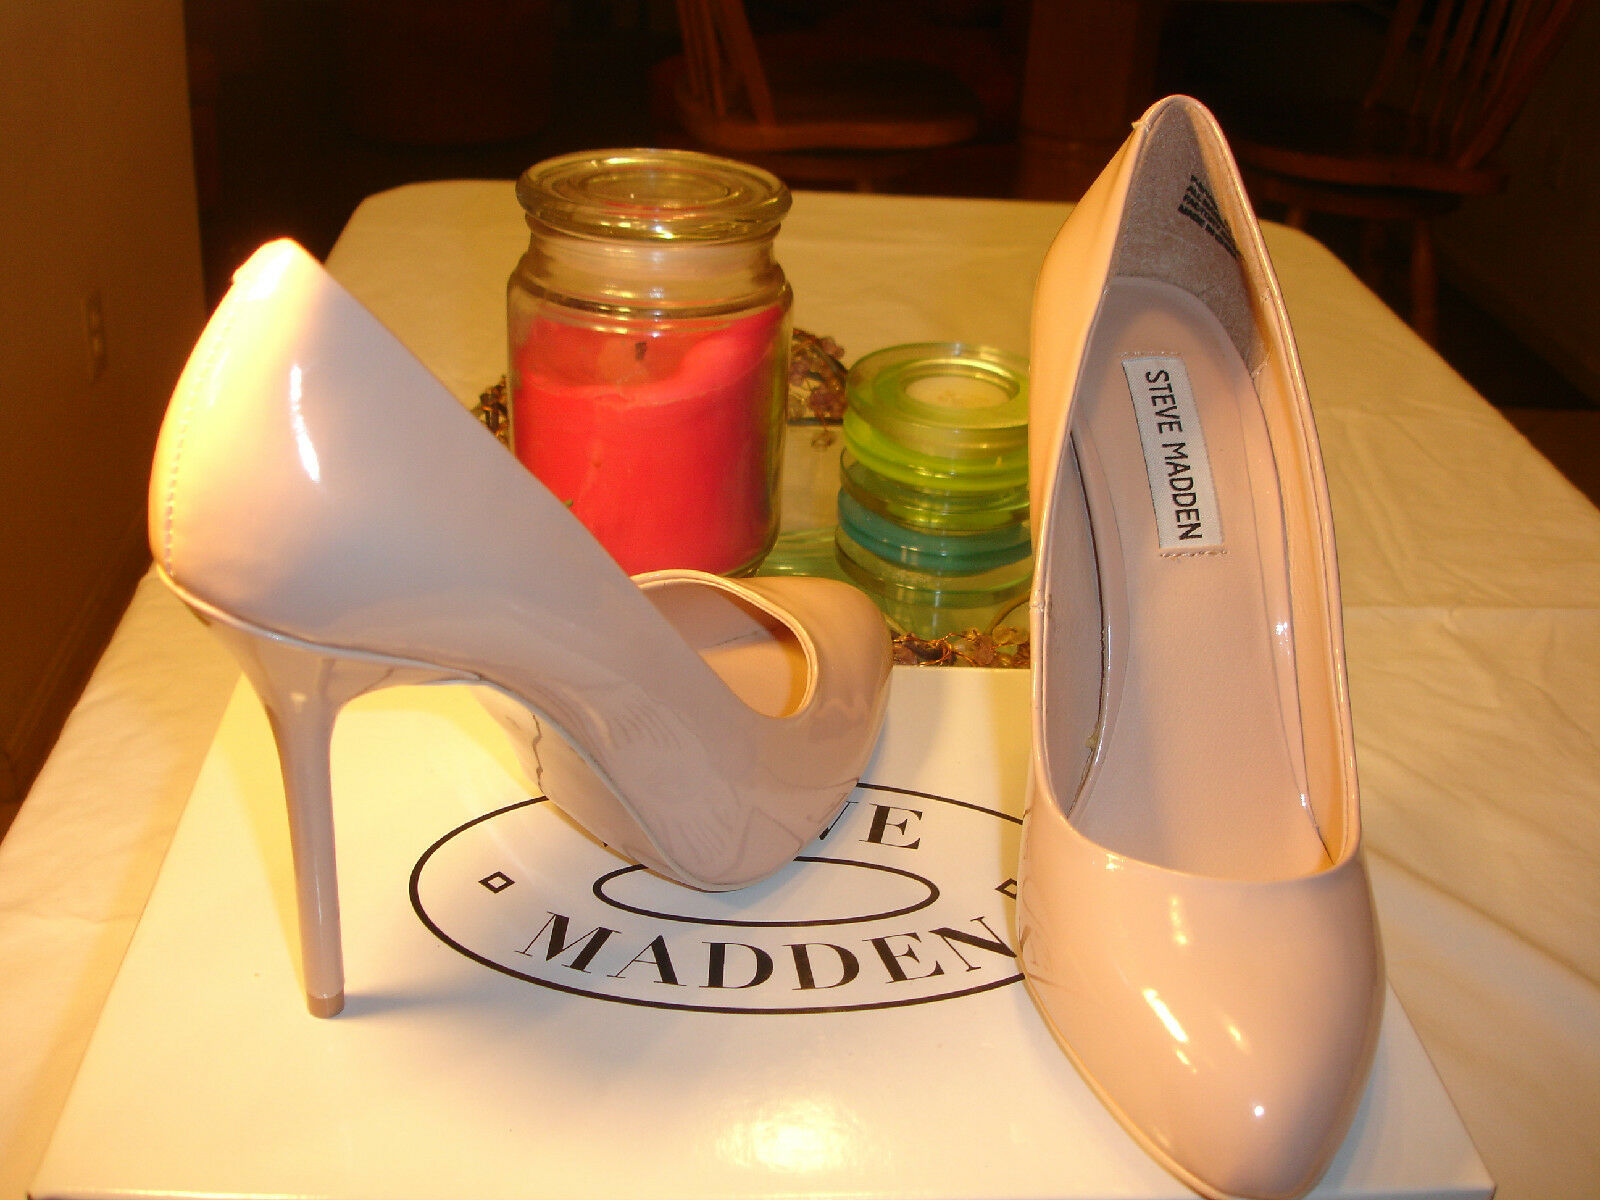 Steve Madden Saige Taupe Patent Heel Stiletto sexy   99   7.5 8 9.5 10 6319a7